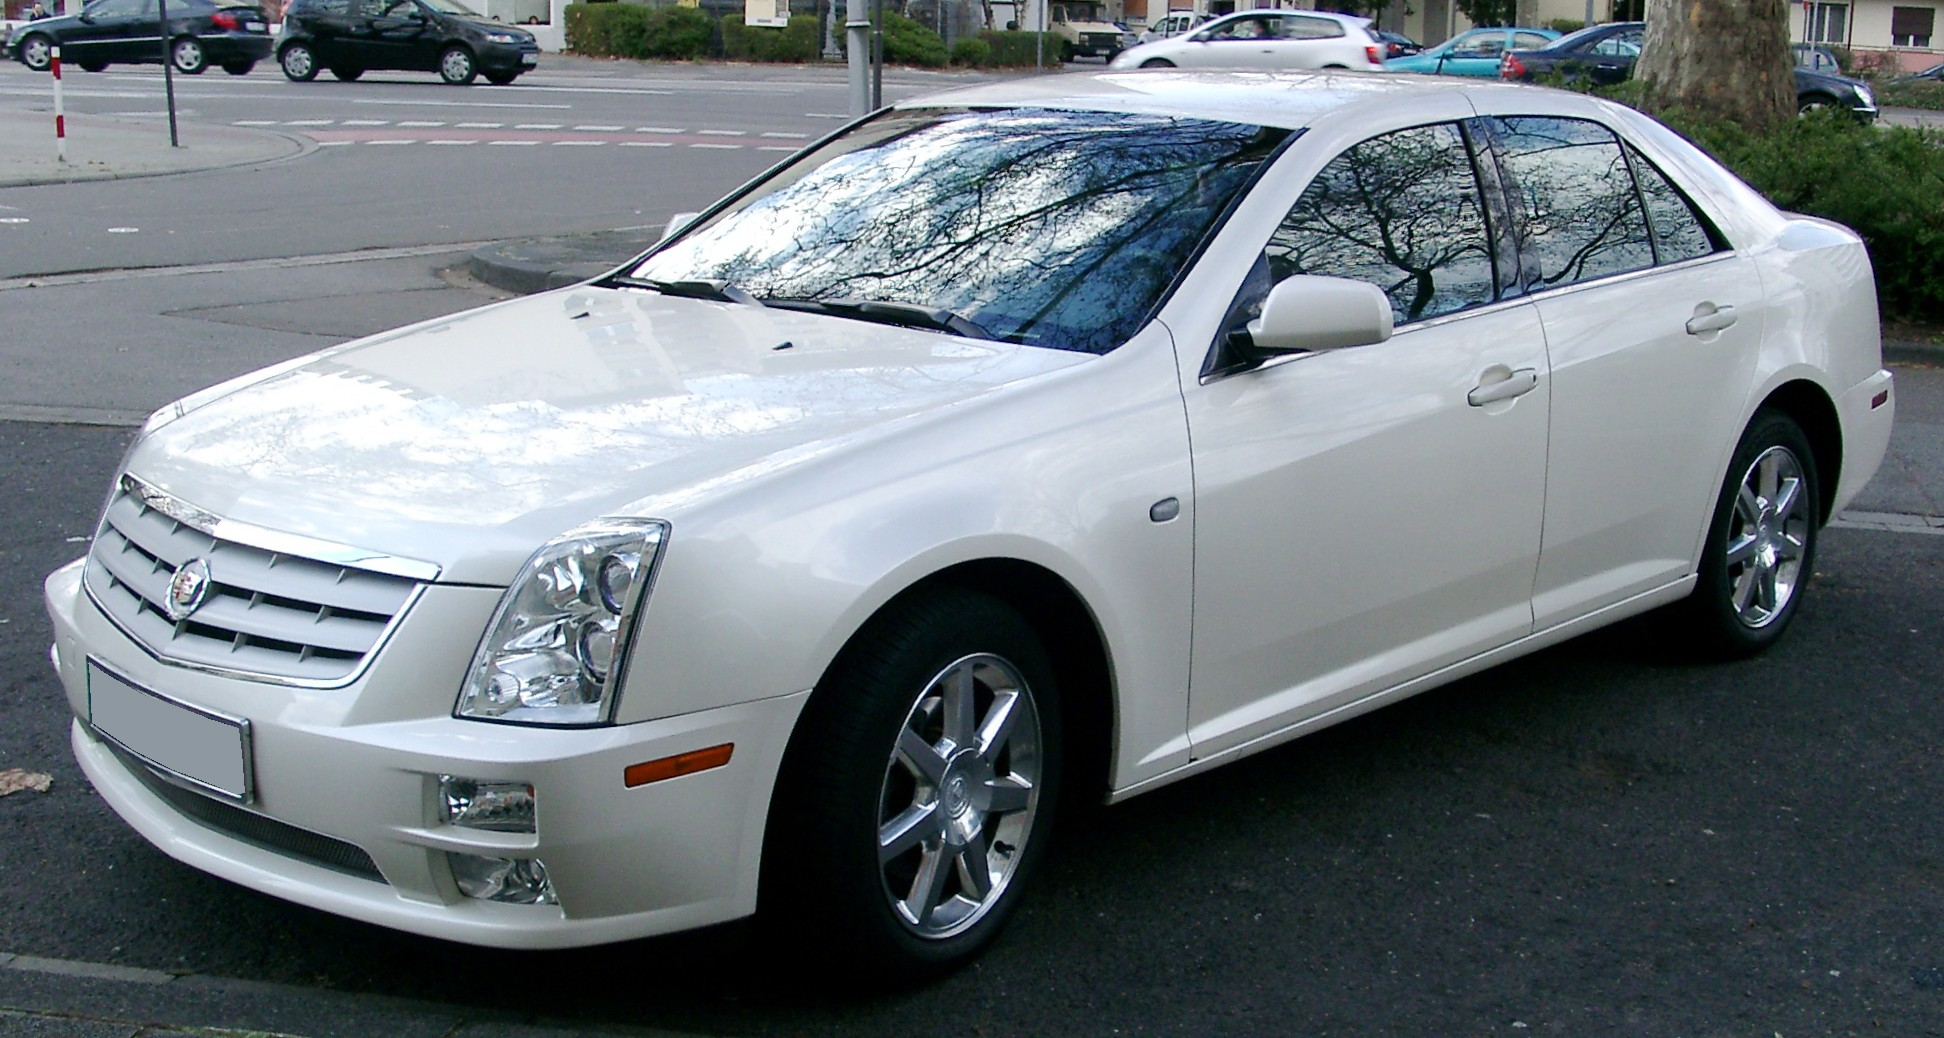 File:Cadillac STS front 20080318.jpg - Wikimedia Commons